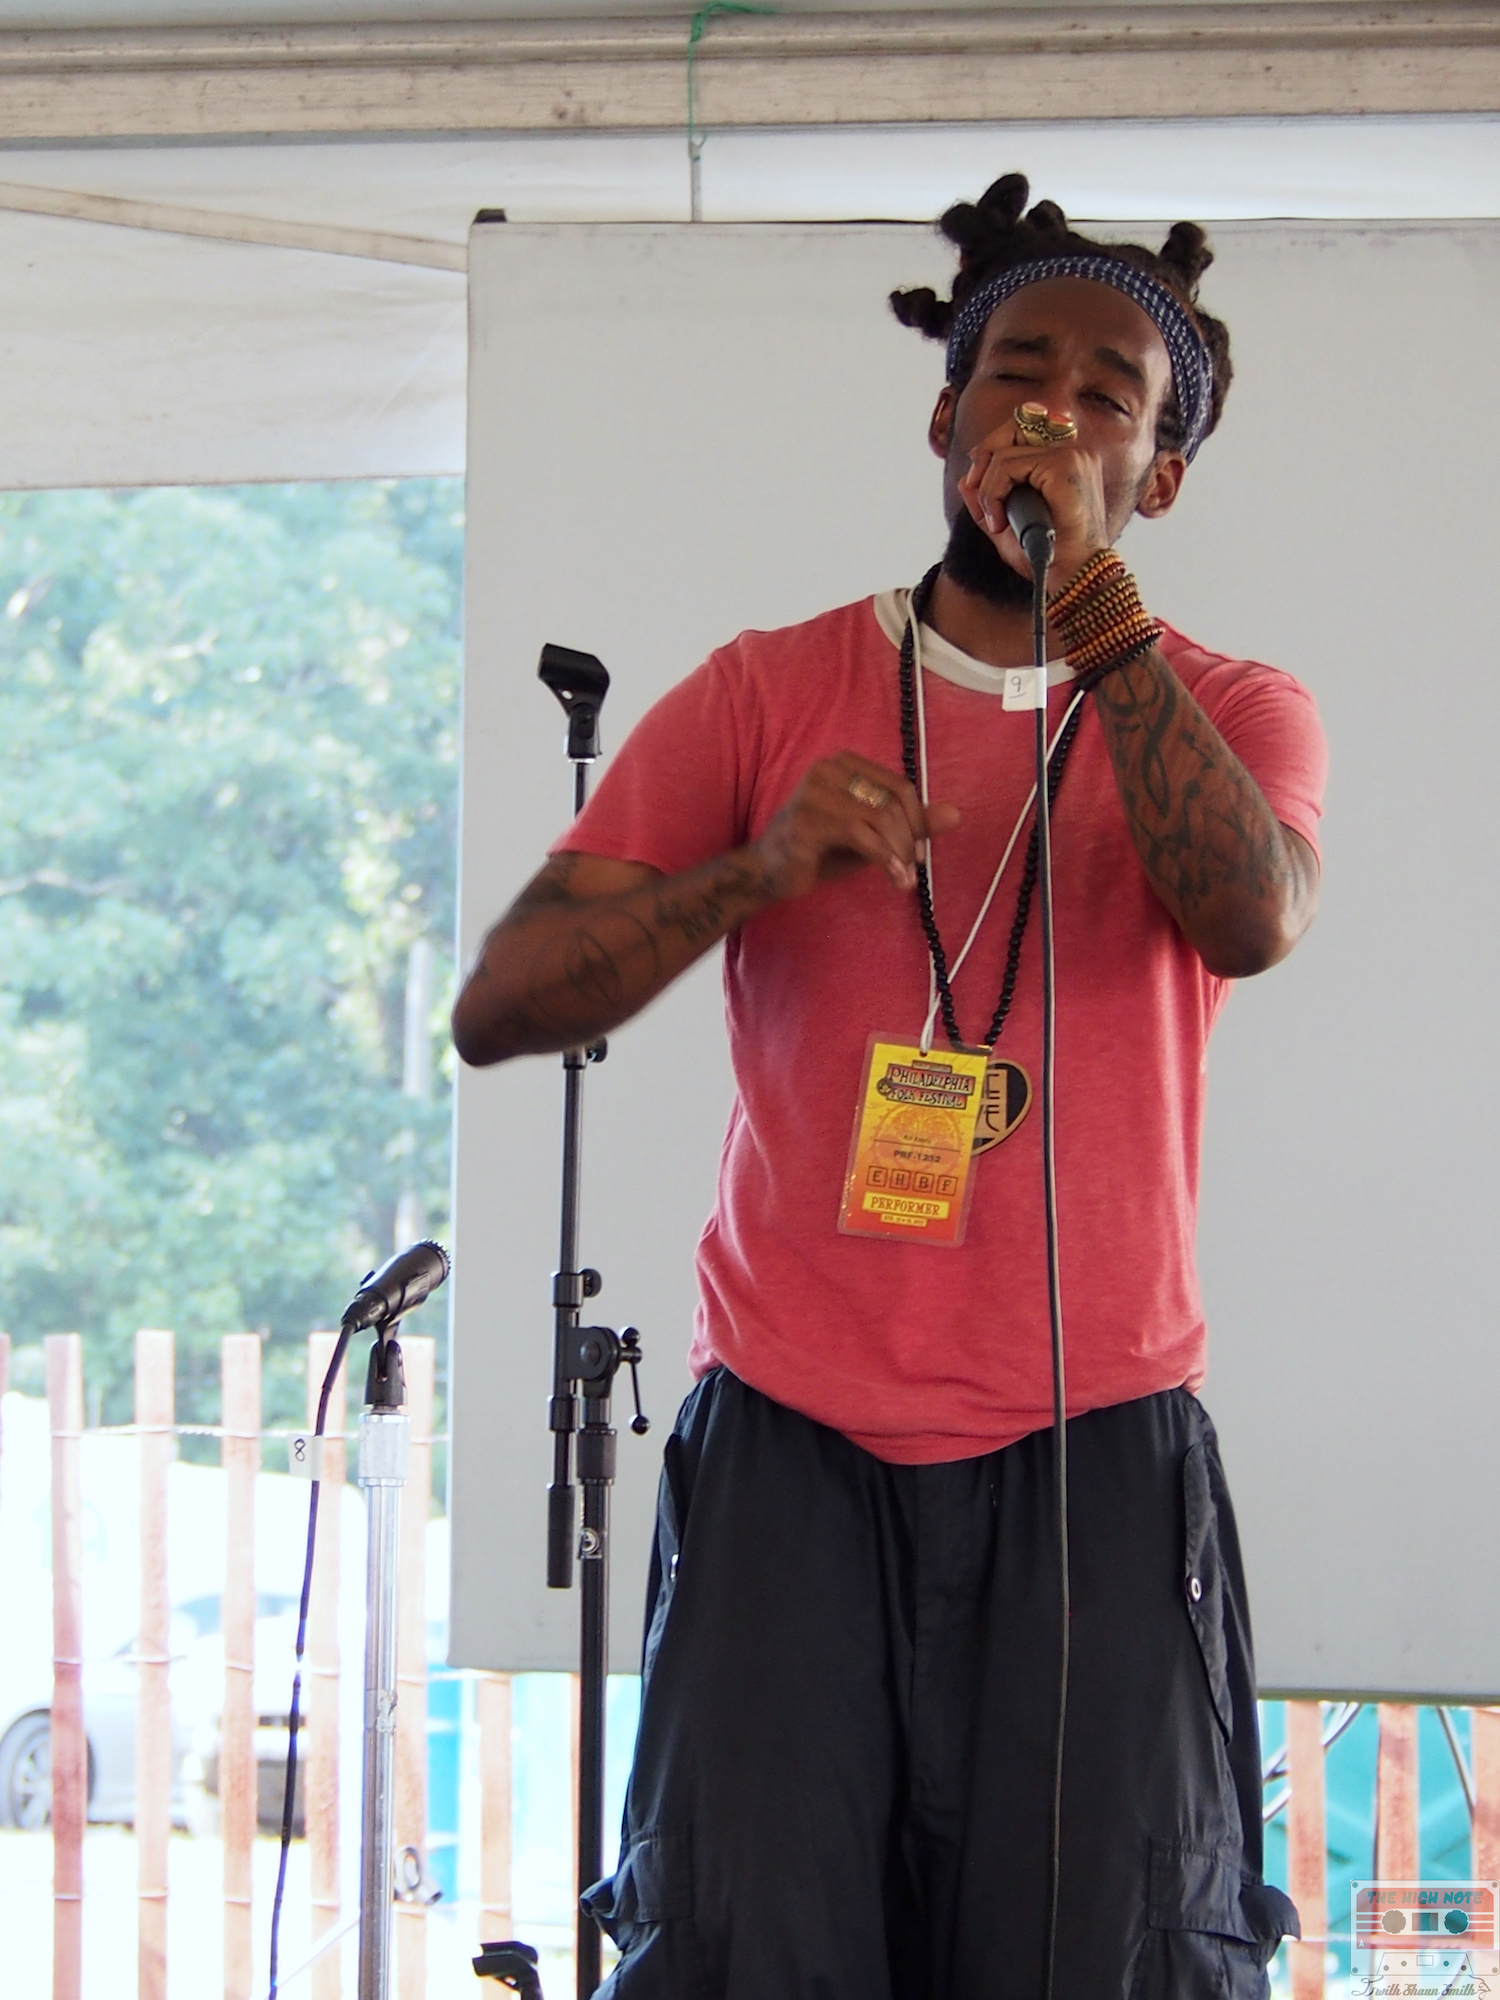 Kuf Knotz freestyles during the 54th annual Philadelphia Folk Festival.